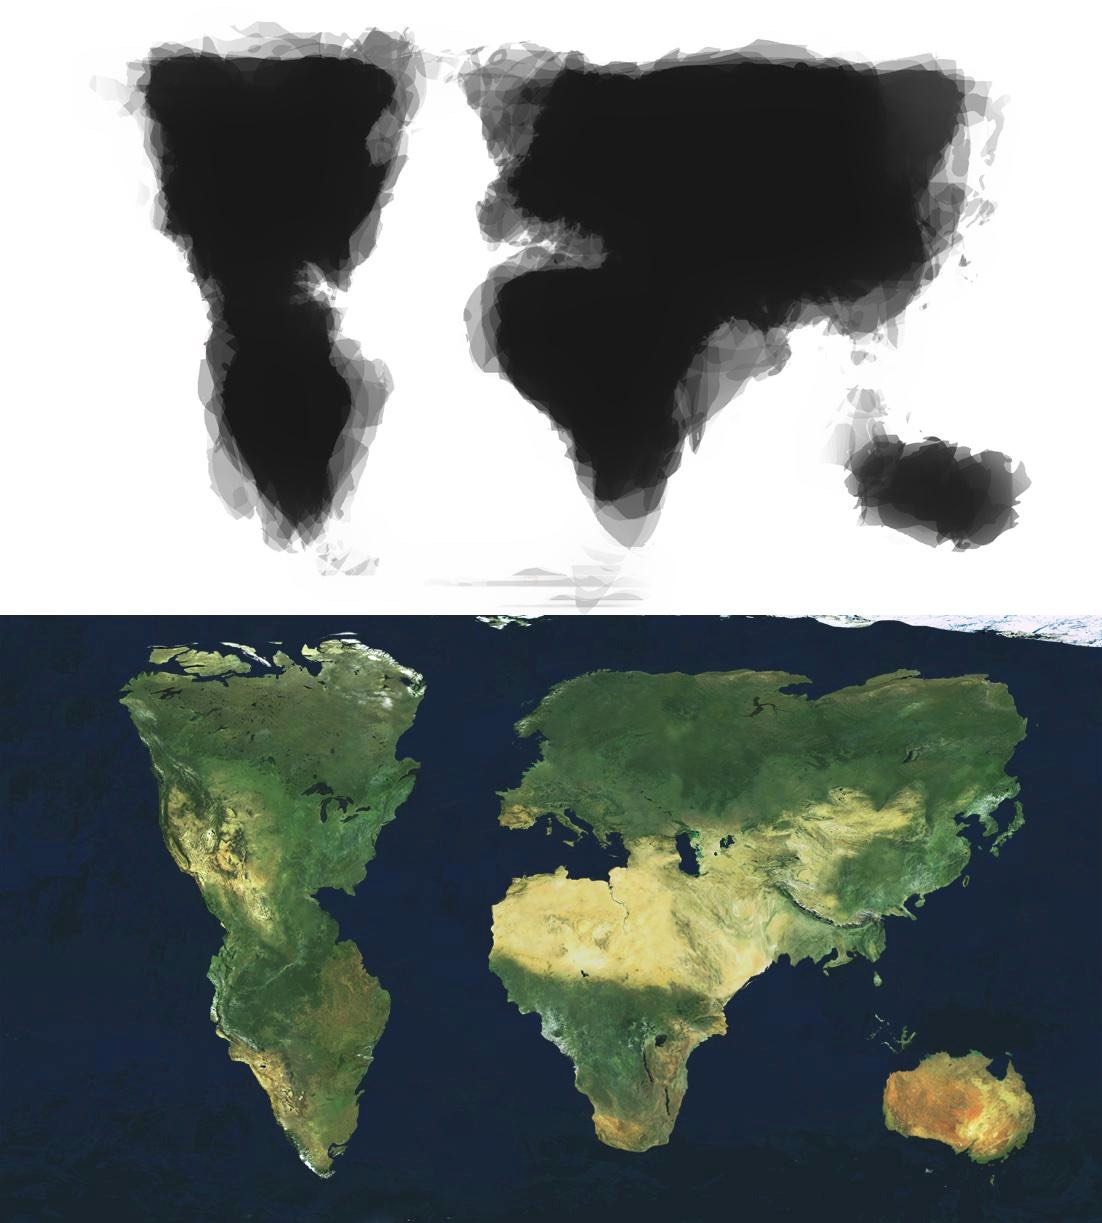 An average hand-drawn map of the world